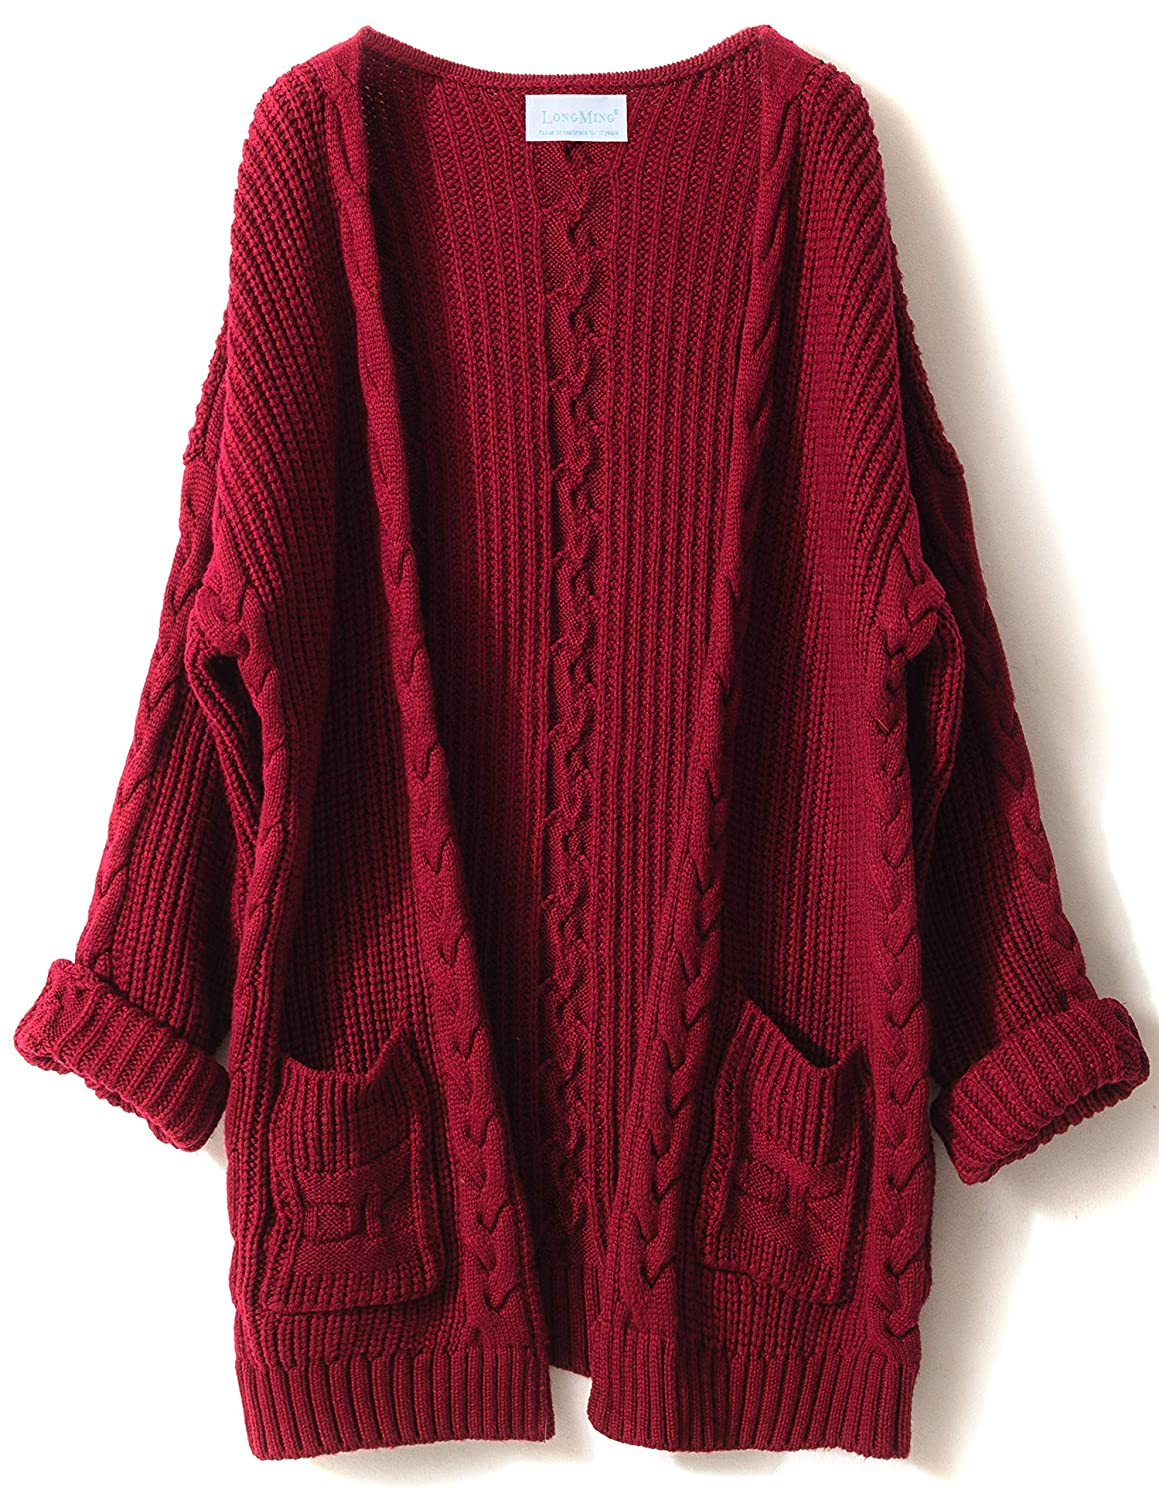 LONGMING Women's Cashmere Long Sleeve Open Front Winter Cardigan Sweater